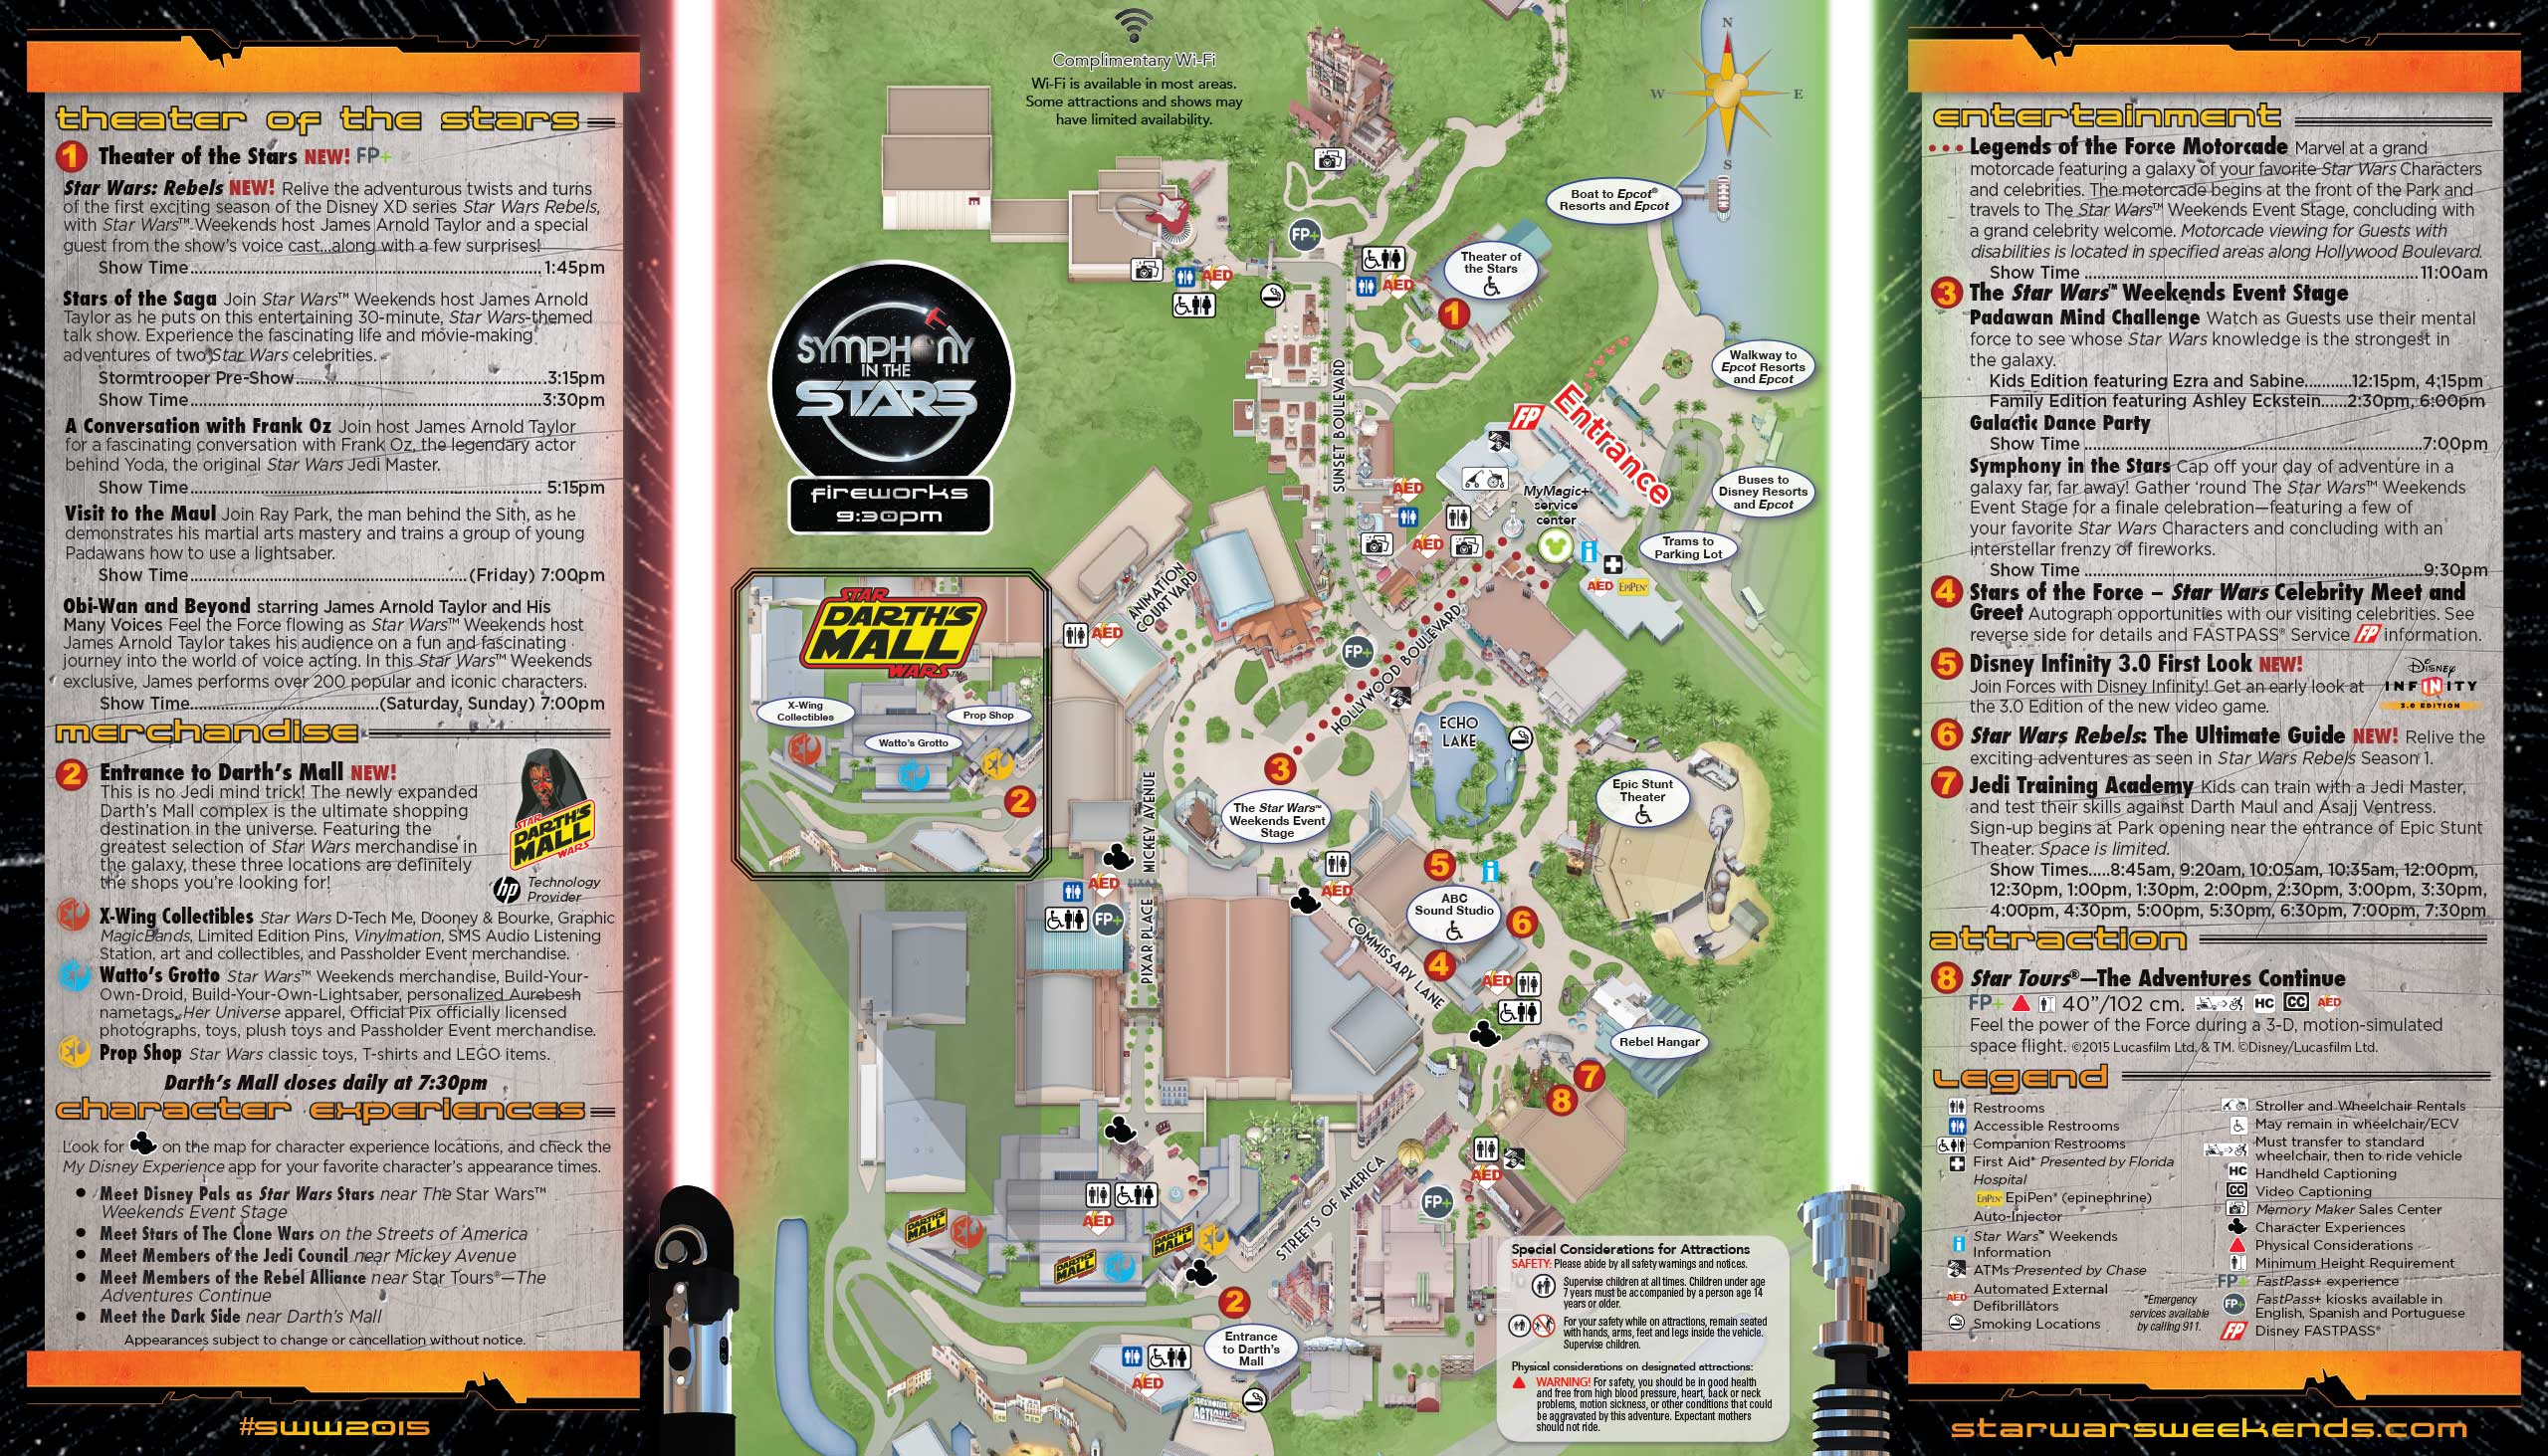 2015 Star Wars Weekends June 12 - 14 Weekend 5 guide map - Back